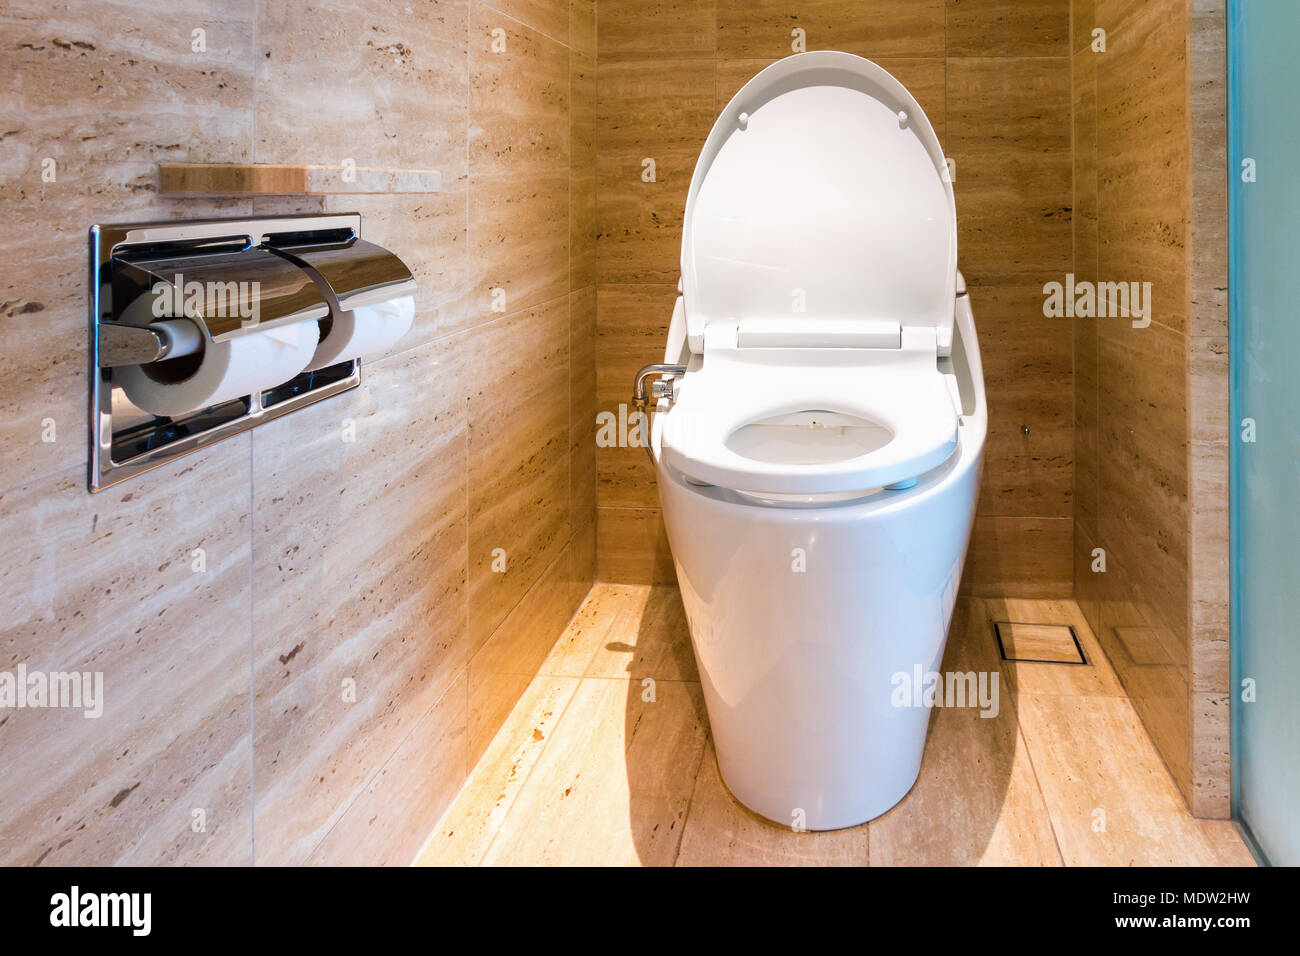 Decorative Toilet Stockfotos & Decorative Toilet Bilder - Alamy